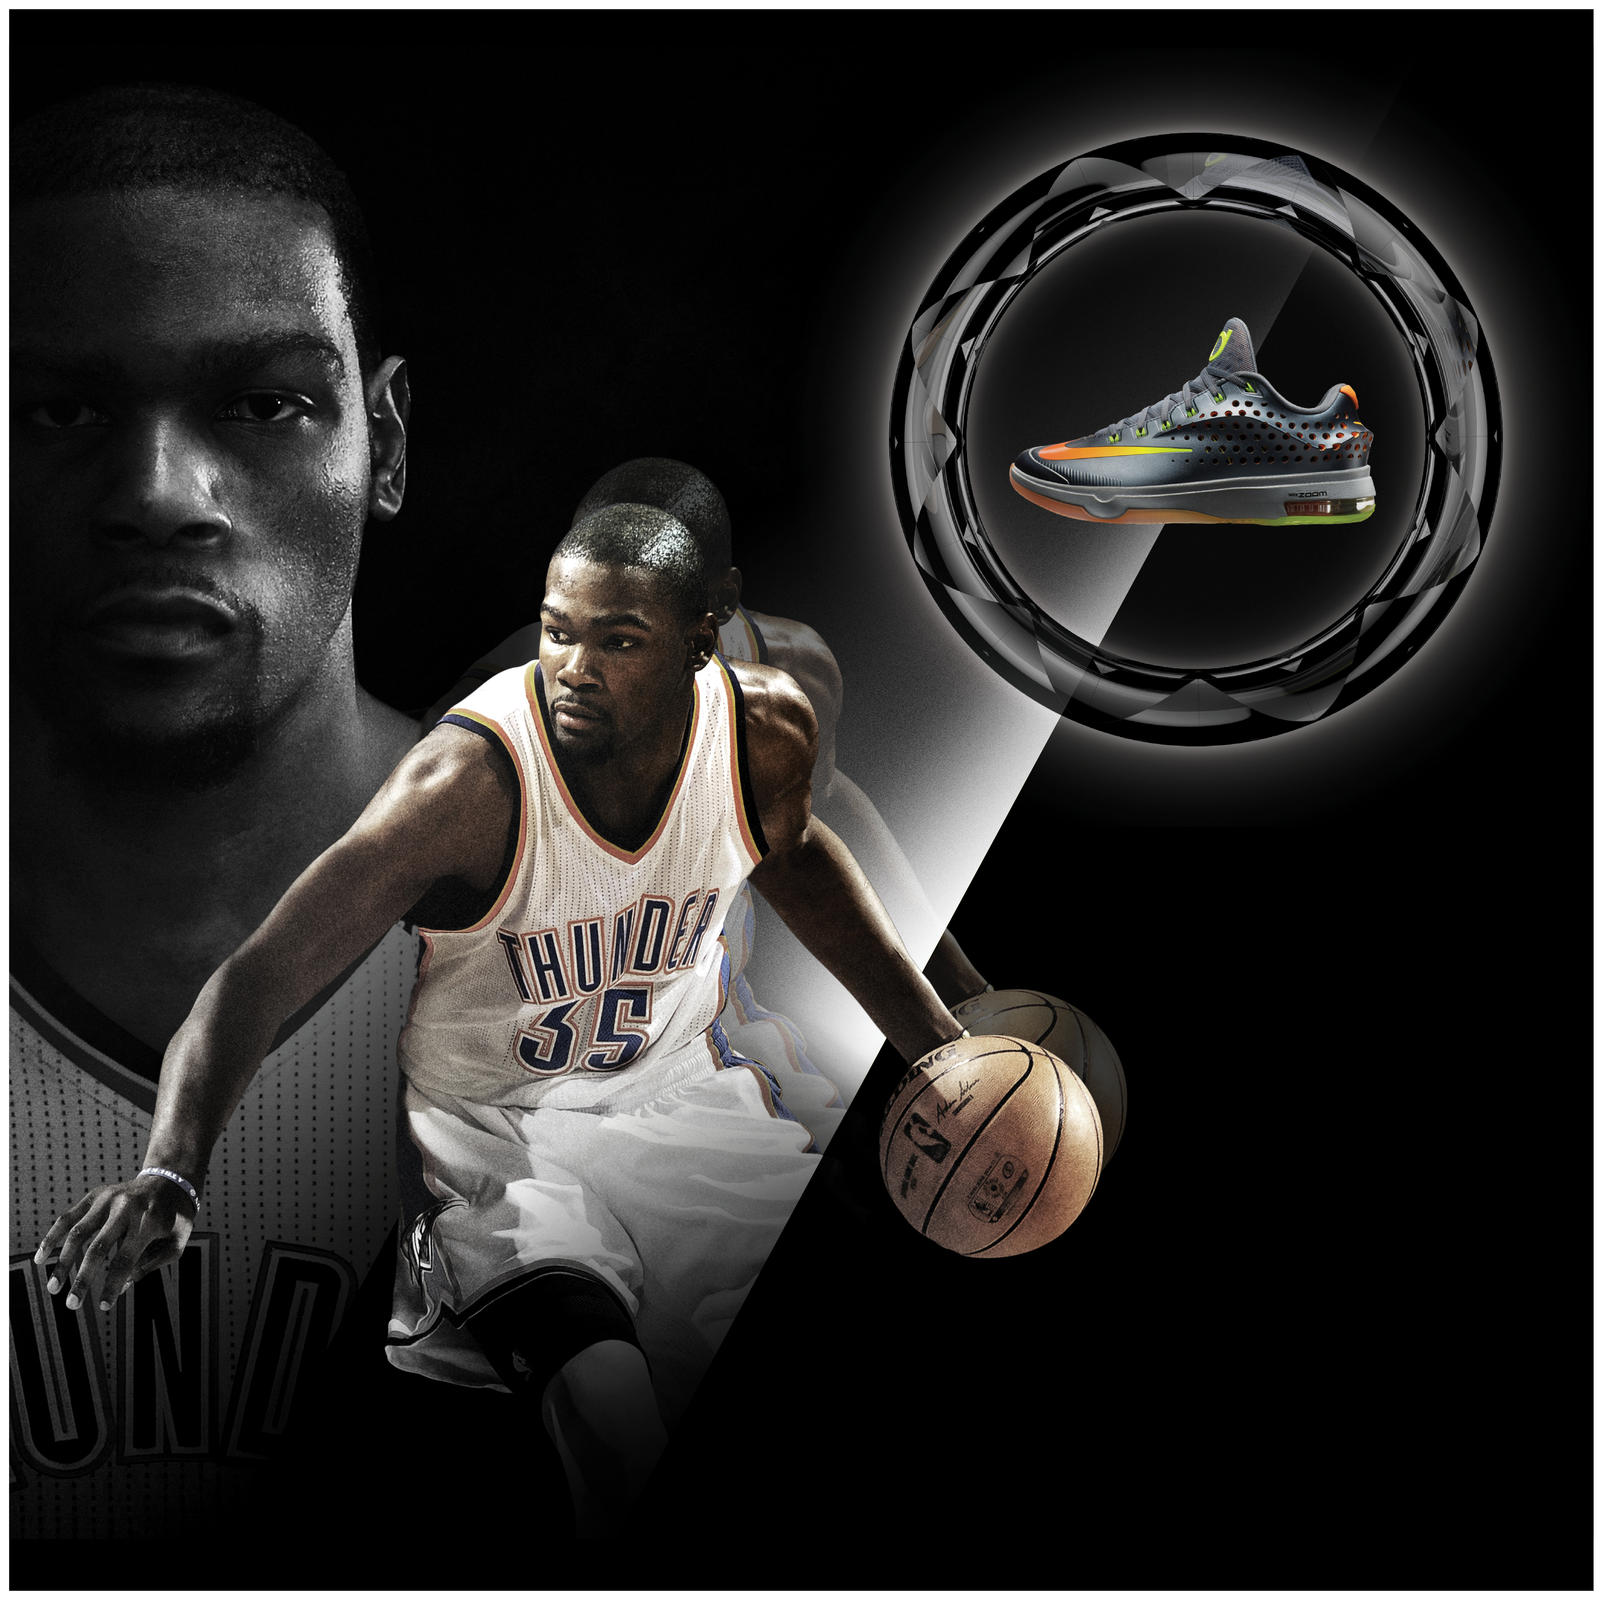 Su15_BB_Elite_Creative_Direction_Single-Athlete_KDurant_Square